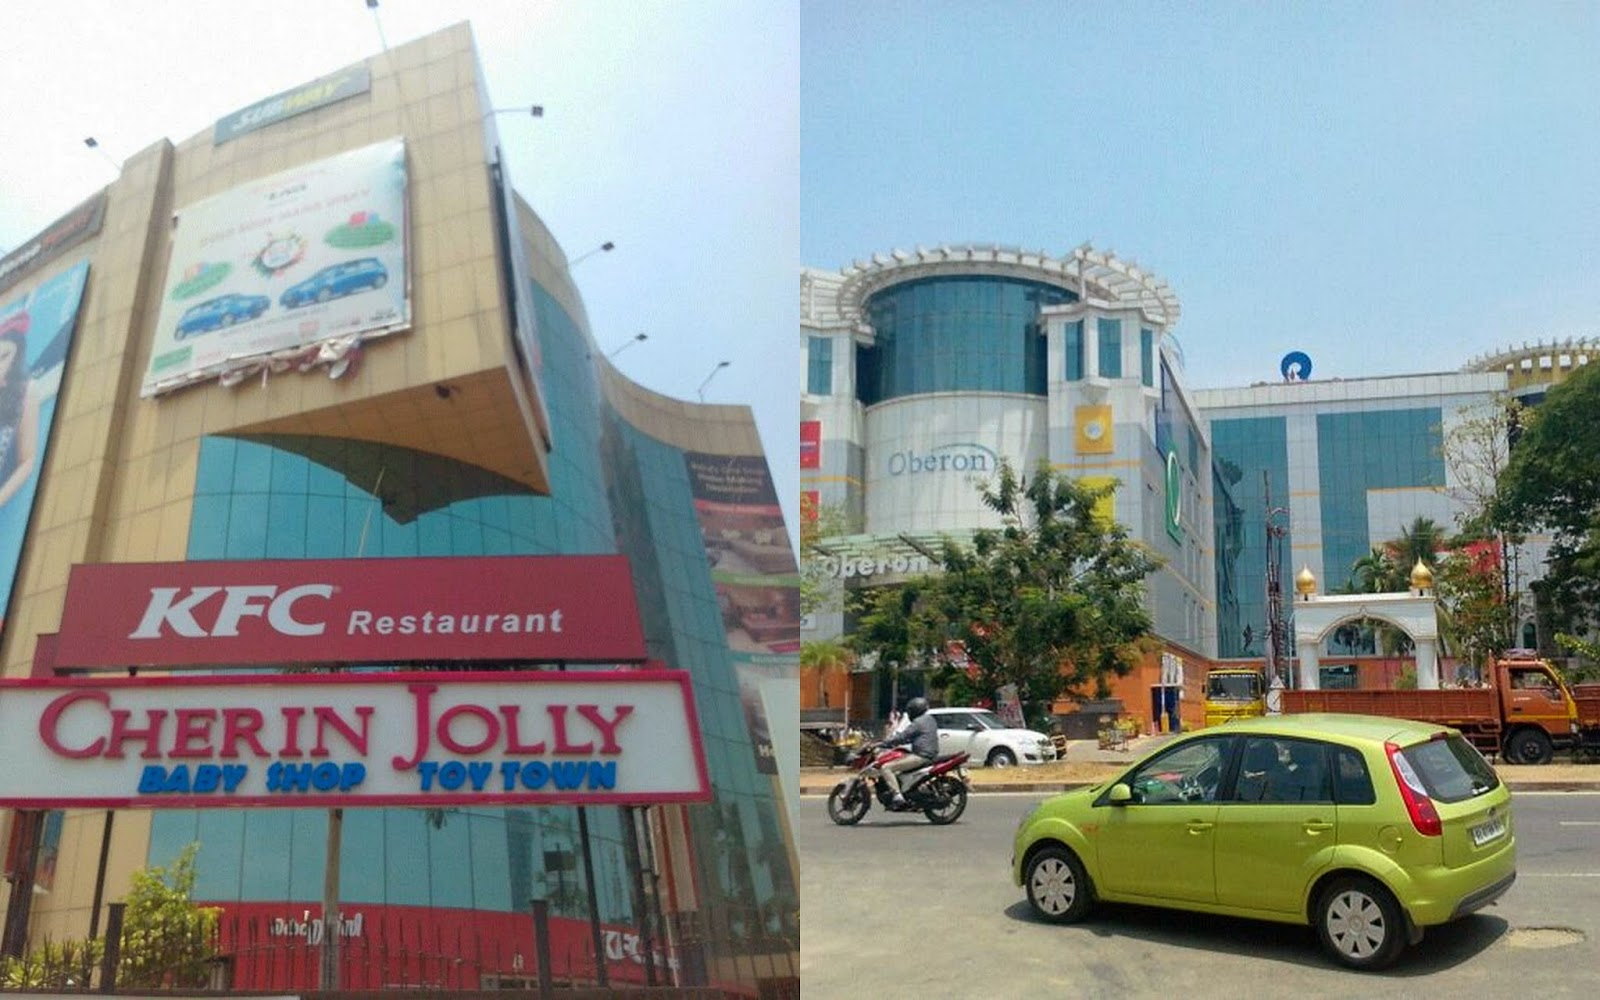 Car interior kochi - Malls In The City From Left Gold Souk Oberon While The Major Brands Like Kfc Big Bazaar Cinemax And Q Cinemas Have Stayed In The Malls